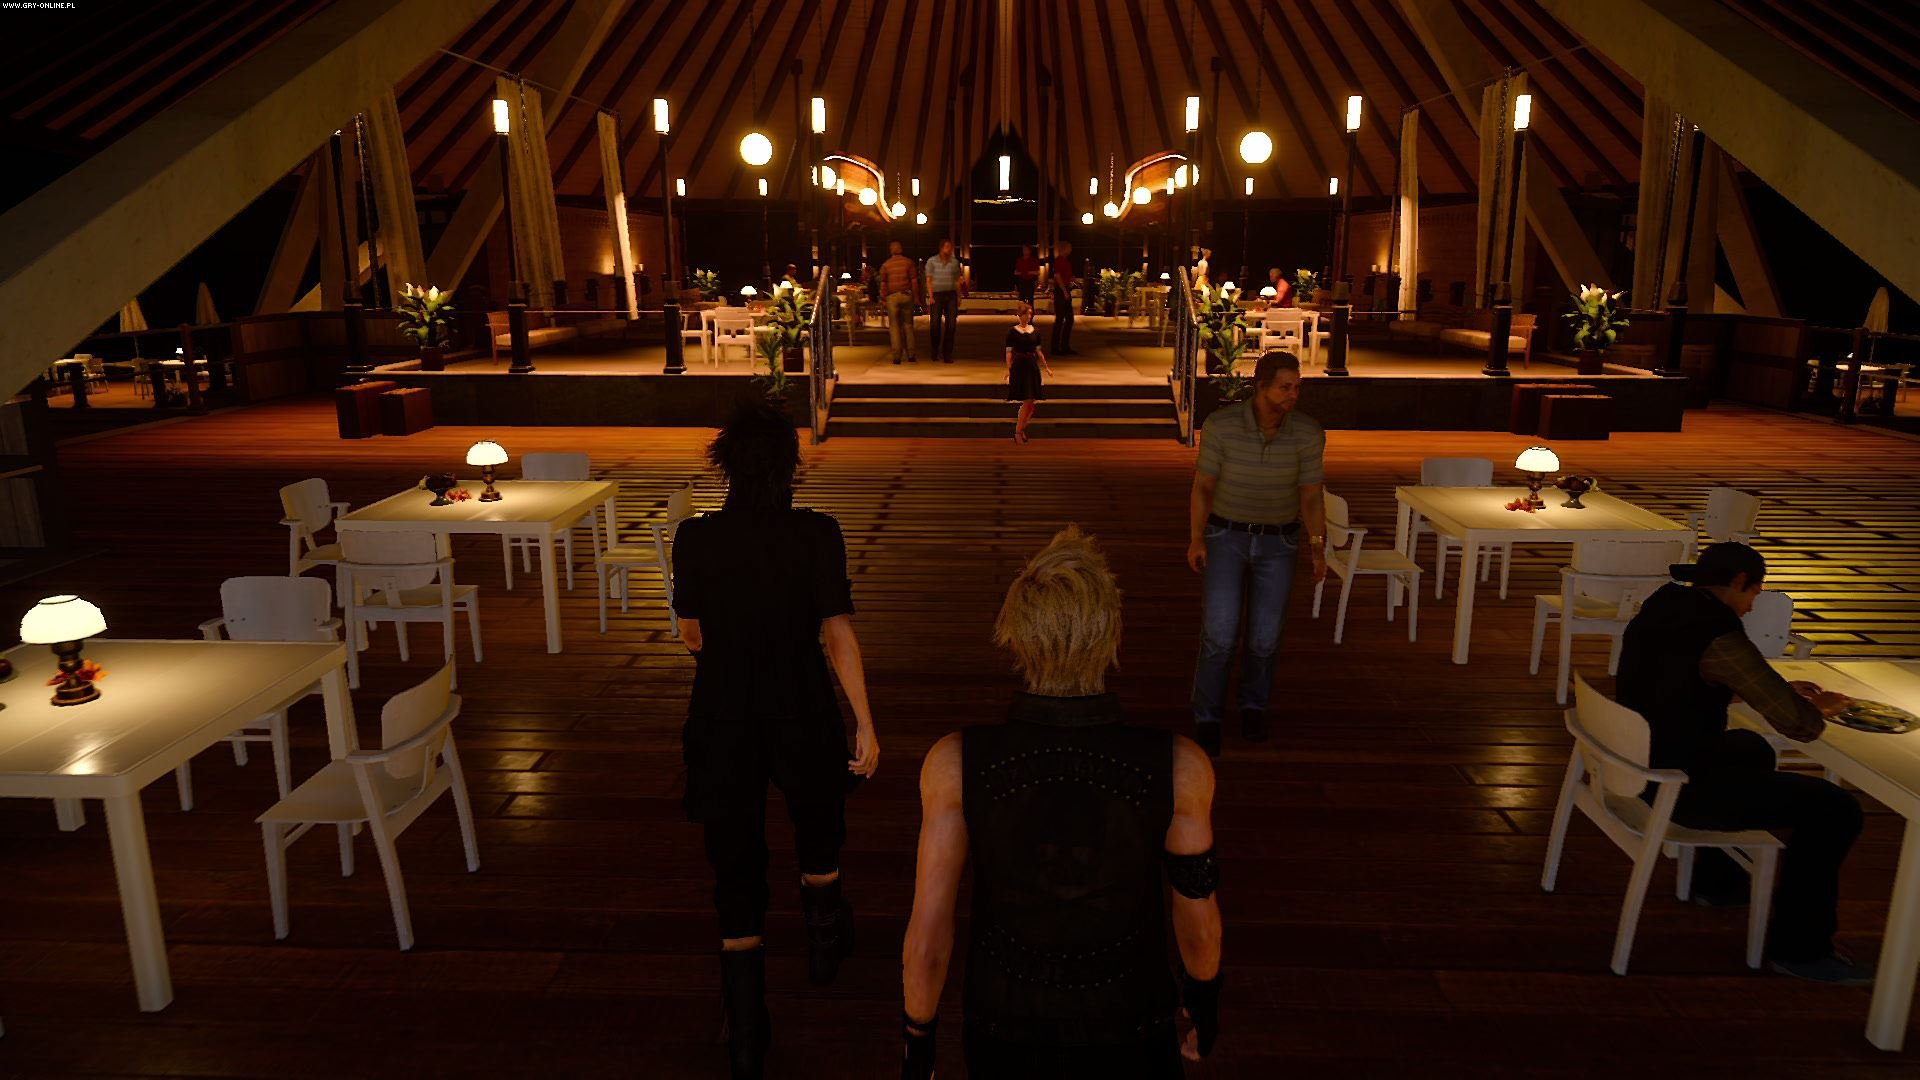 Final Fantasy XV PS4, XONE Games Image 176/374, Square-Enix, Square-Enix / Eidos